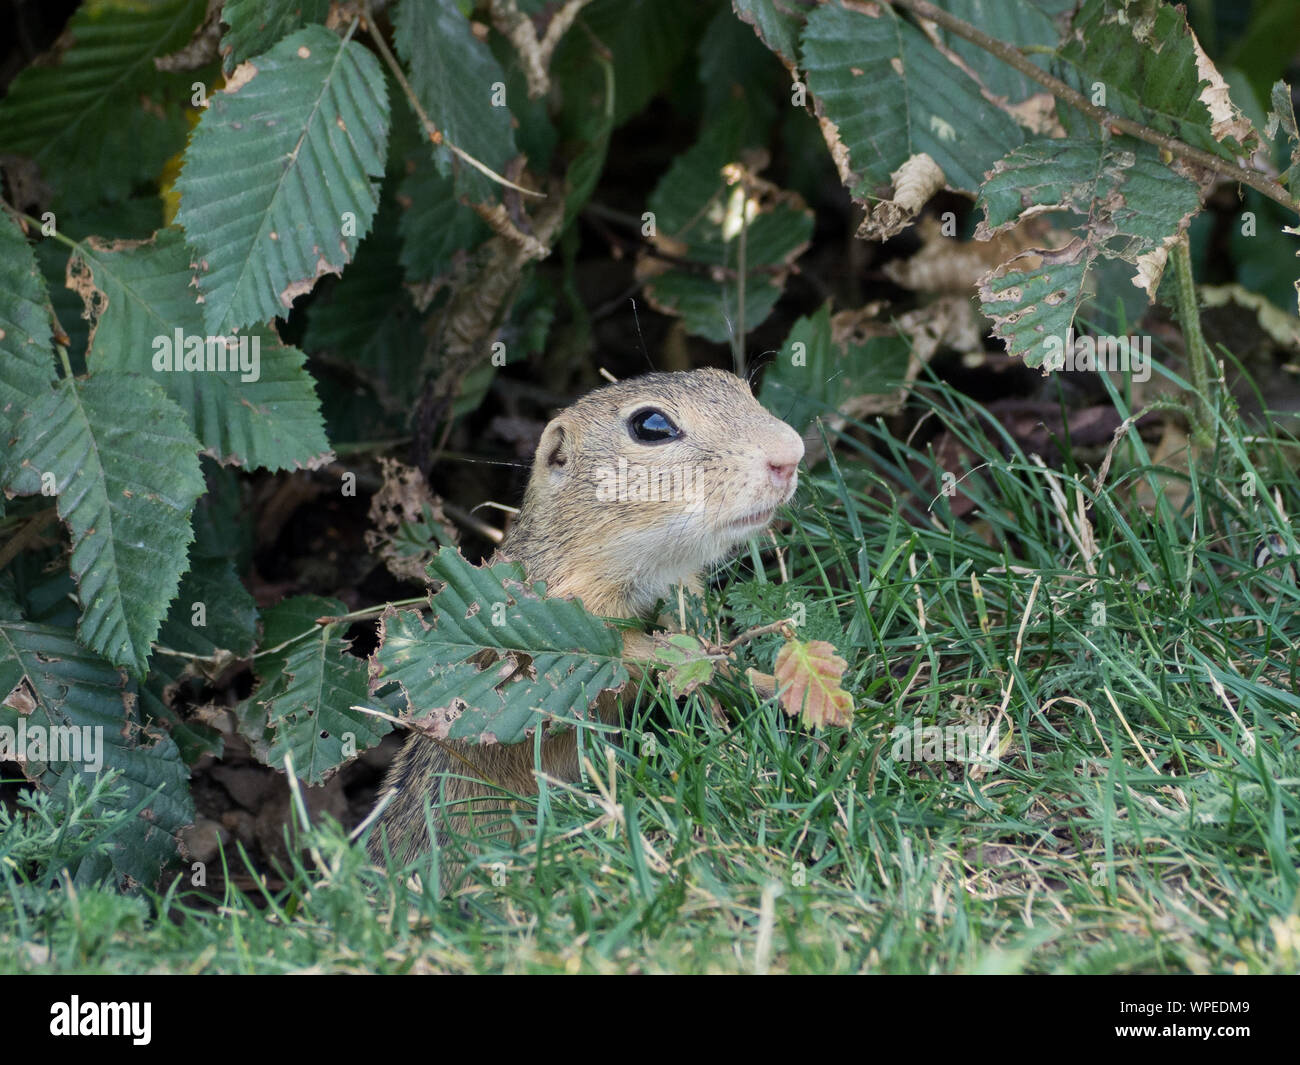 European squirrel comes out of its burrow Stock Photo